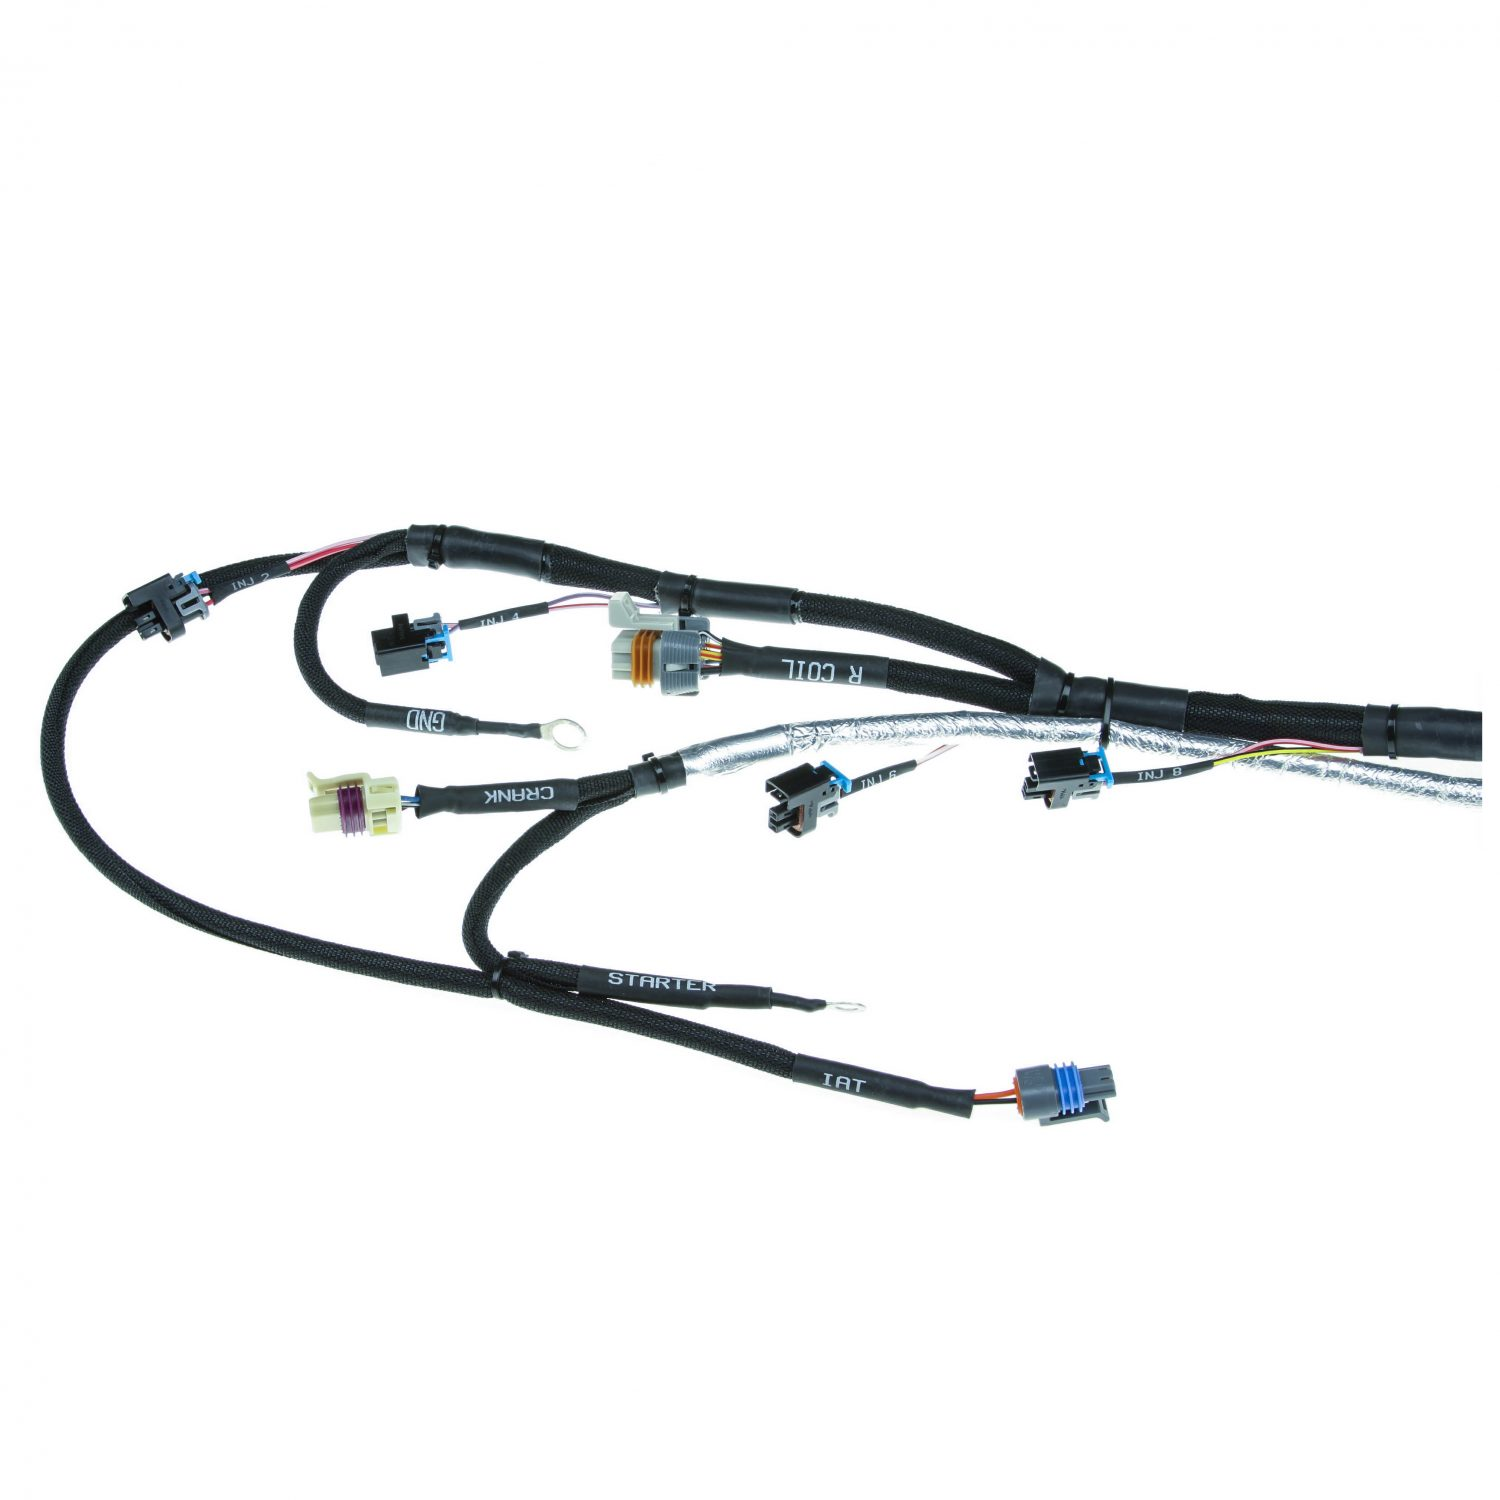 Gm Ls 24x Plug And Play Engine Harness 1st Gen